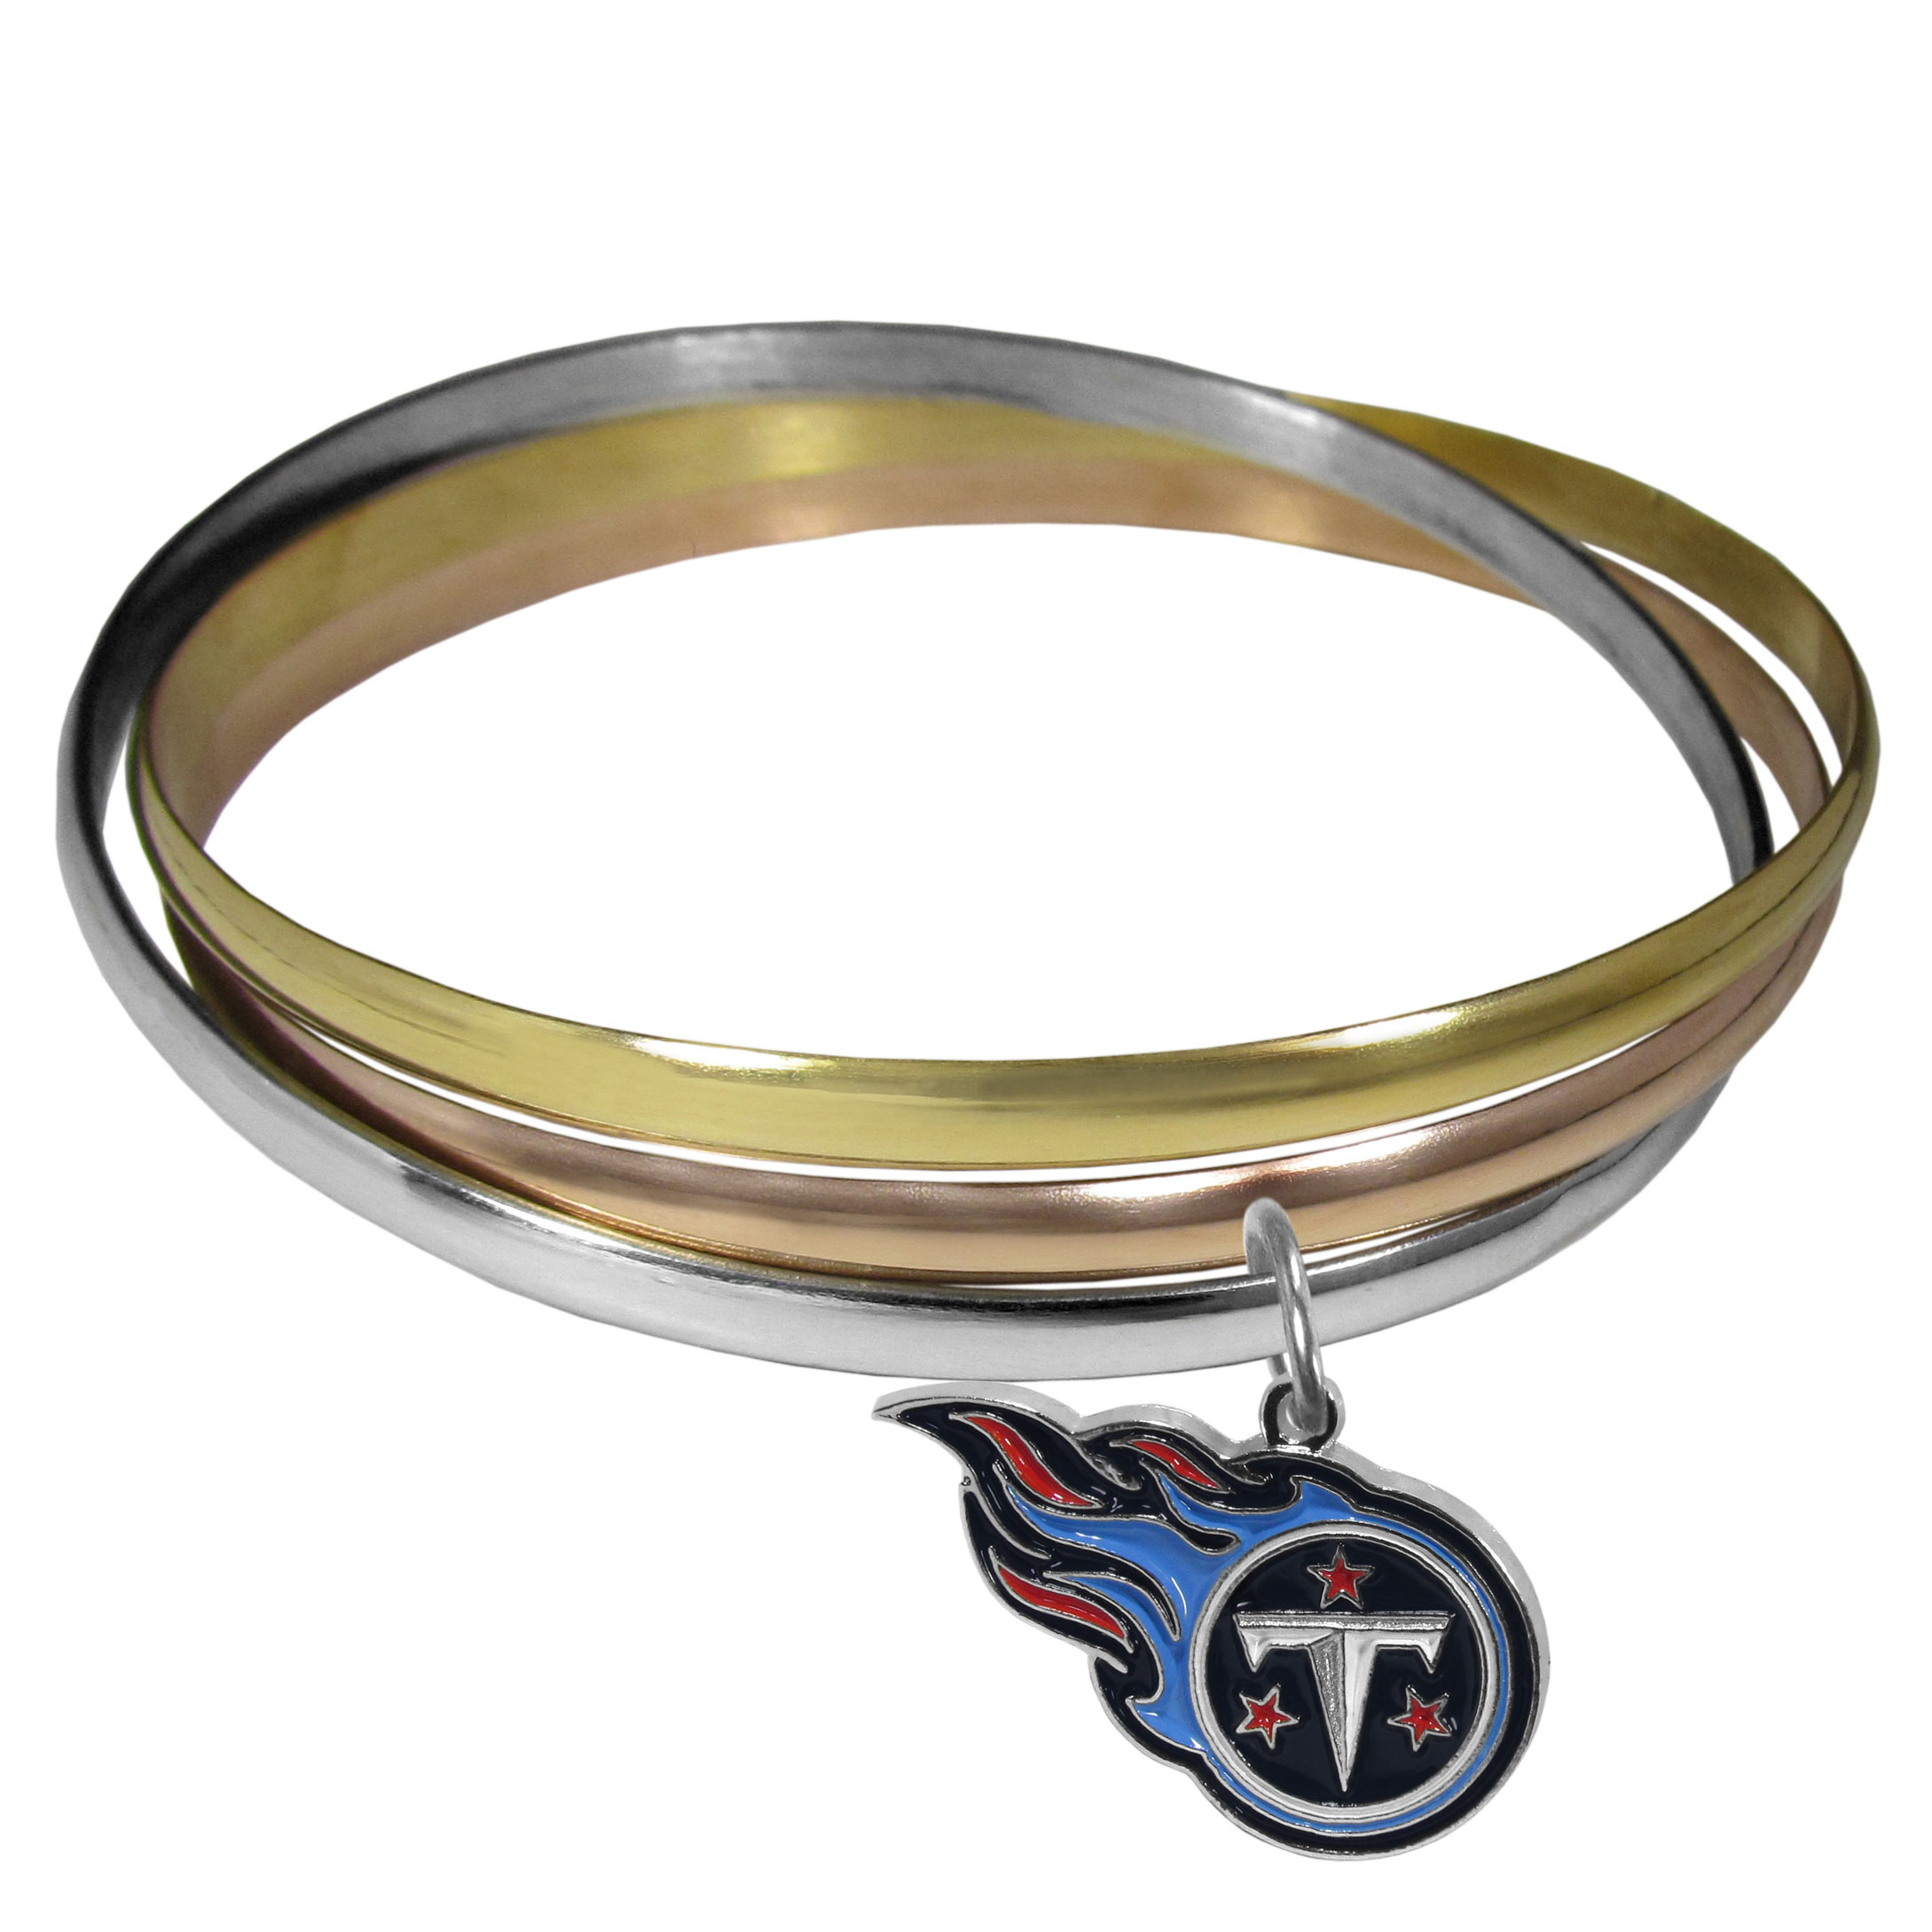 Tennessee Titans Tri-color Bangle Bracelet - These beautiful bangles come in a interlocking style and feature a fully cast Tennessee Titans charm with enameled team colors. The bracelet has a silver toned bangle, gold tone bangle and brass toned bangle.